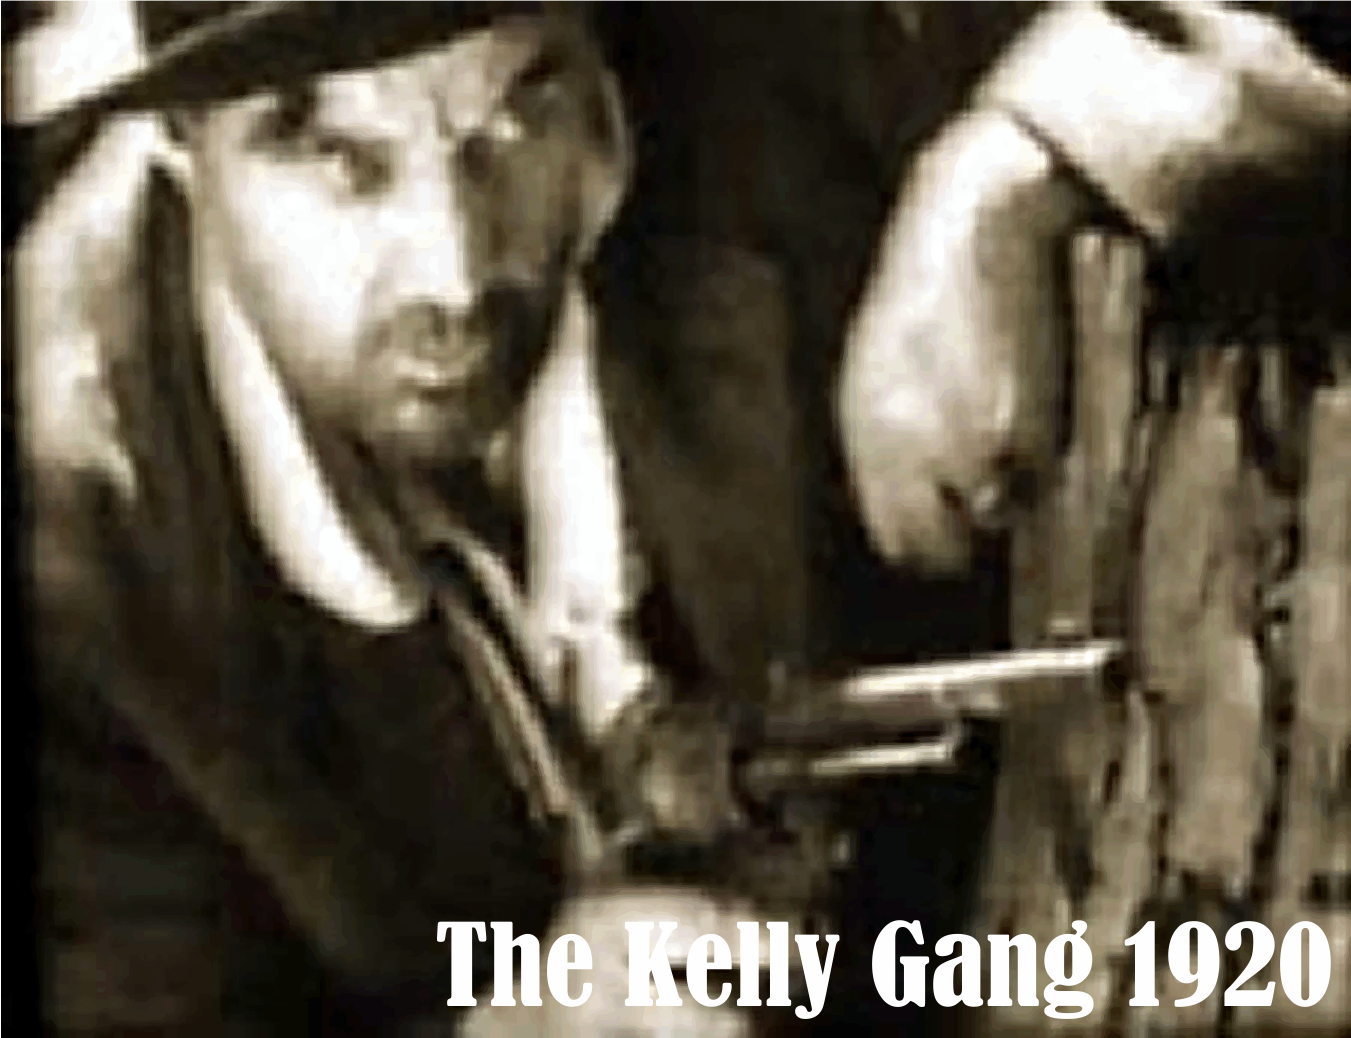 """the ned kelly saga the kelly The ensuing kelly saga has been described as """"a quintessential australian story""""3 the government website australiagovau notes that """"more books, songs and websites have been written about ned kelly and the kelly gang than any other group of."""